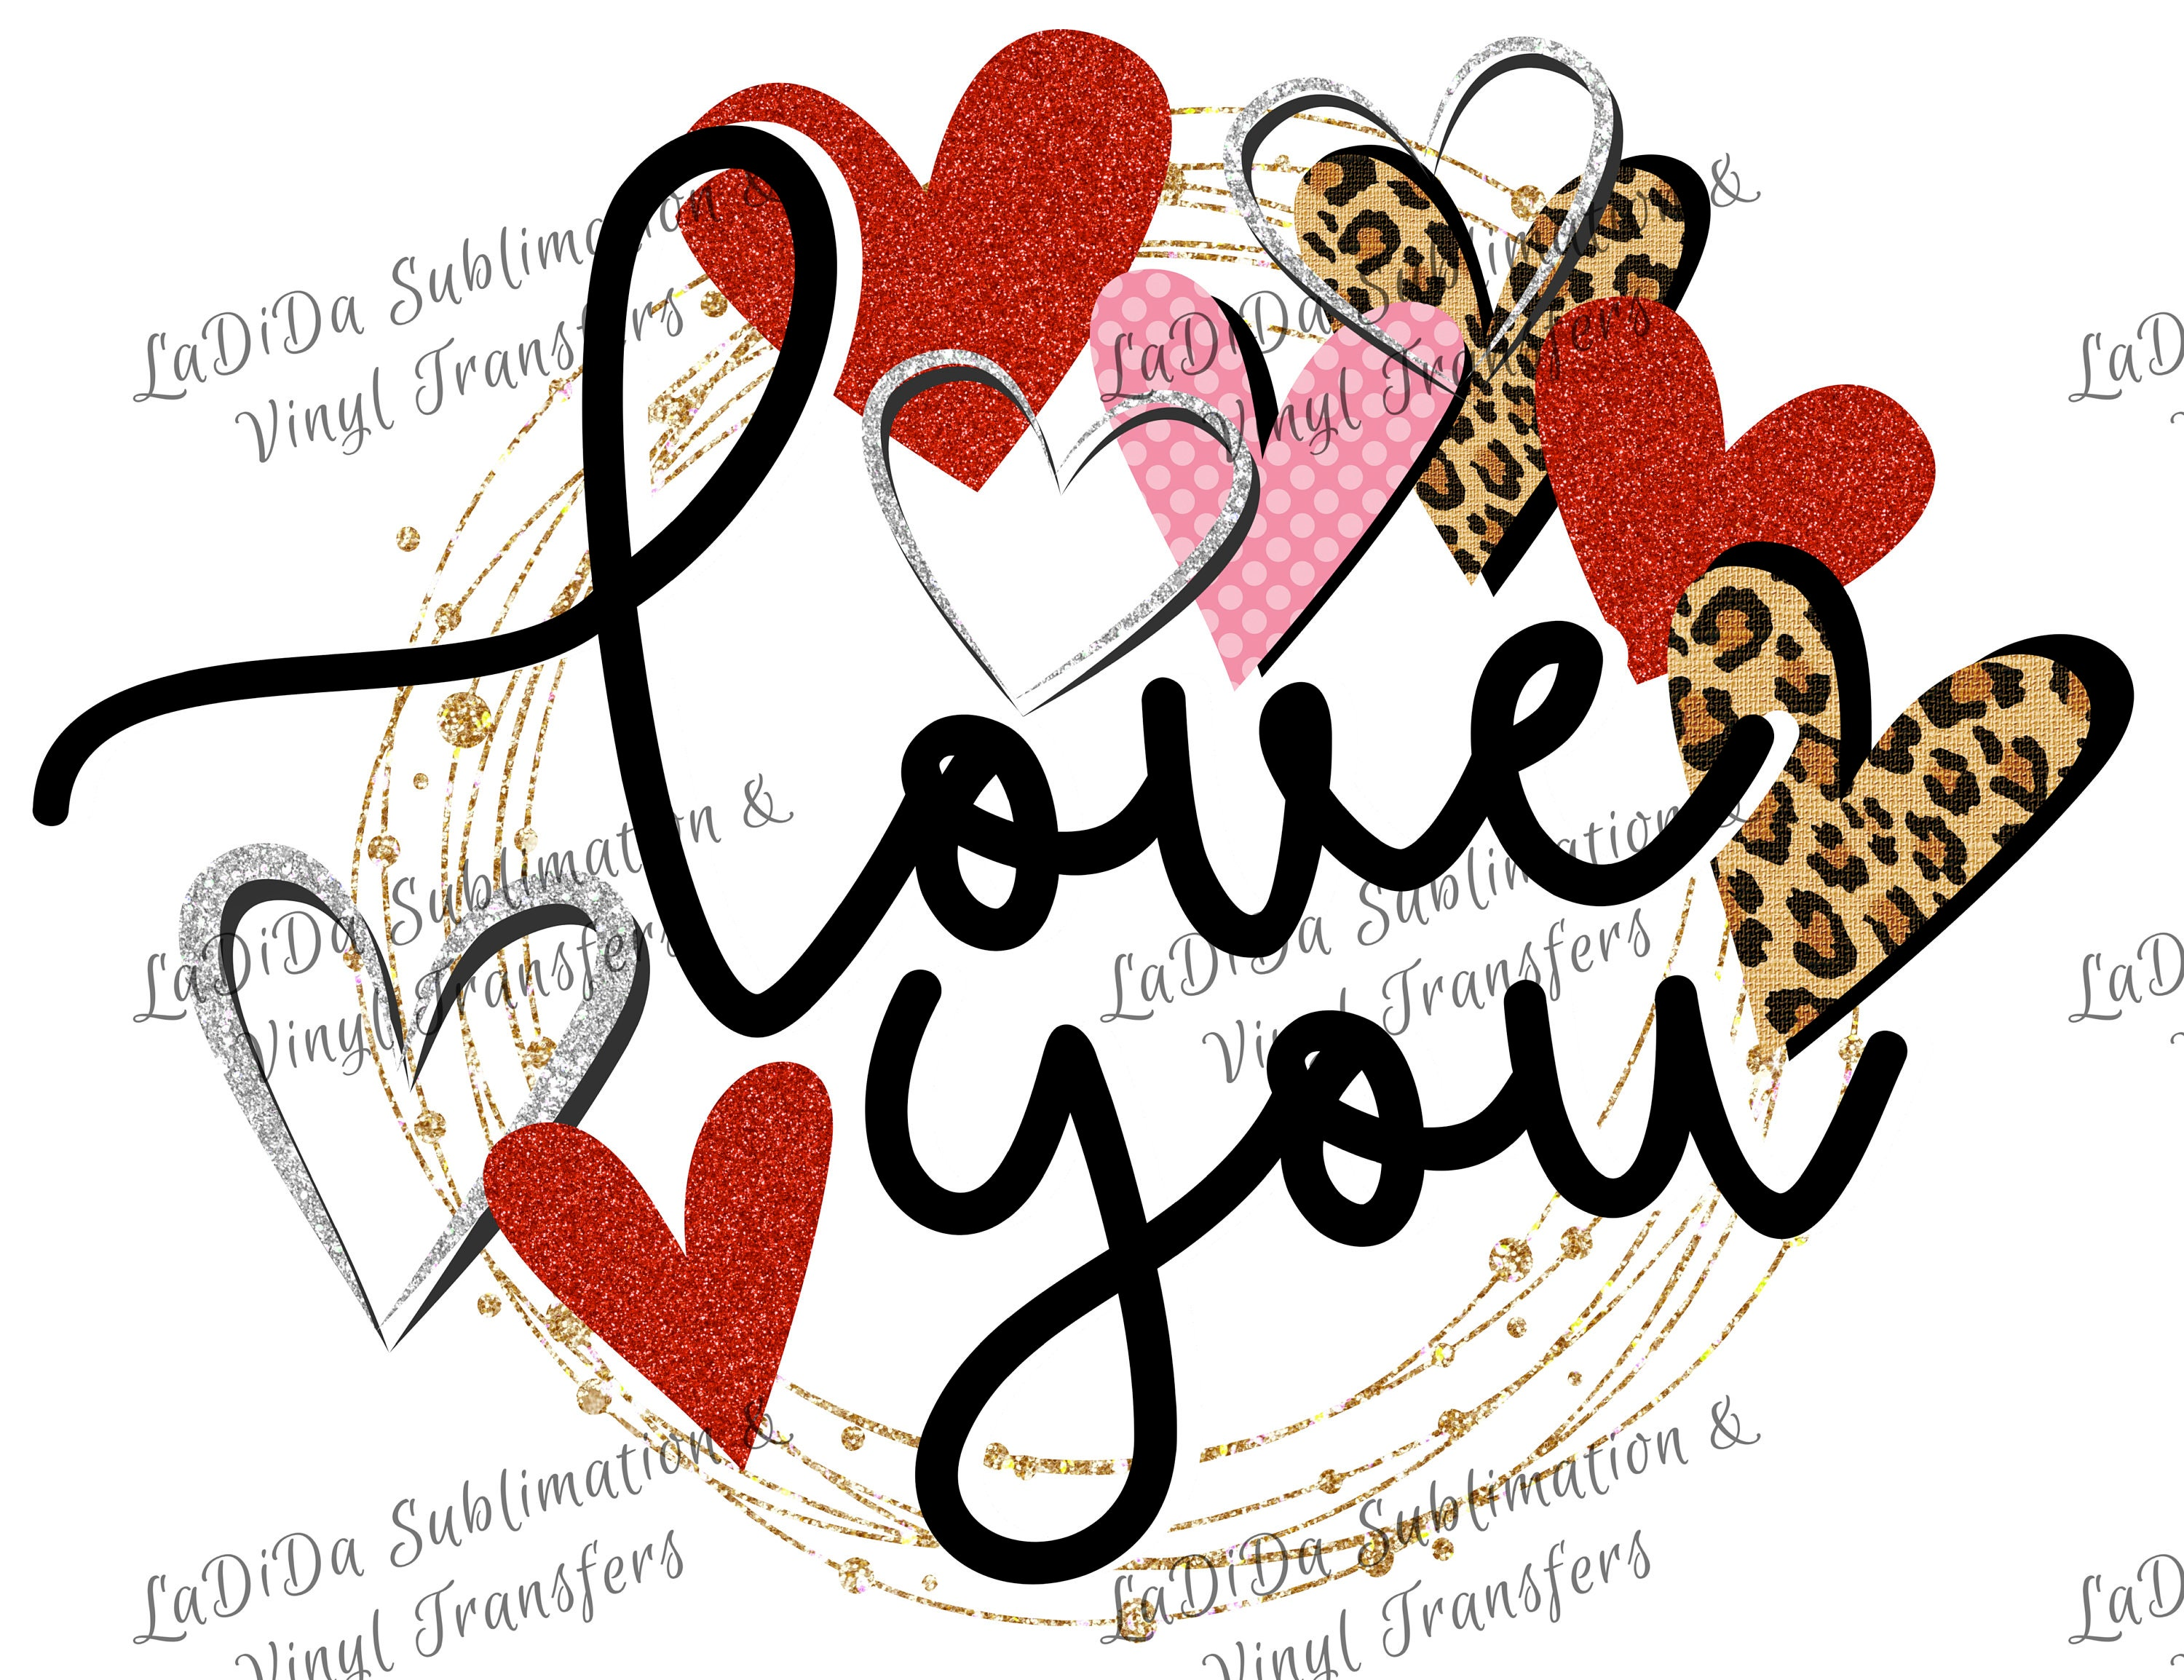 Love You Glitter Circle Surrounded by Leopard Glitter Dots Hearts  Sublimation Transfers - Red Silver Pink Gold Leopard